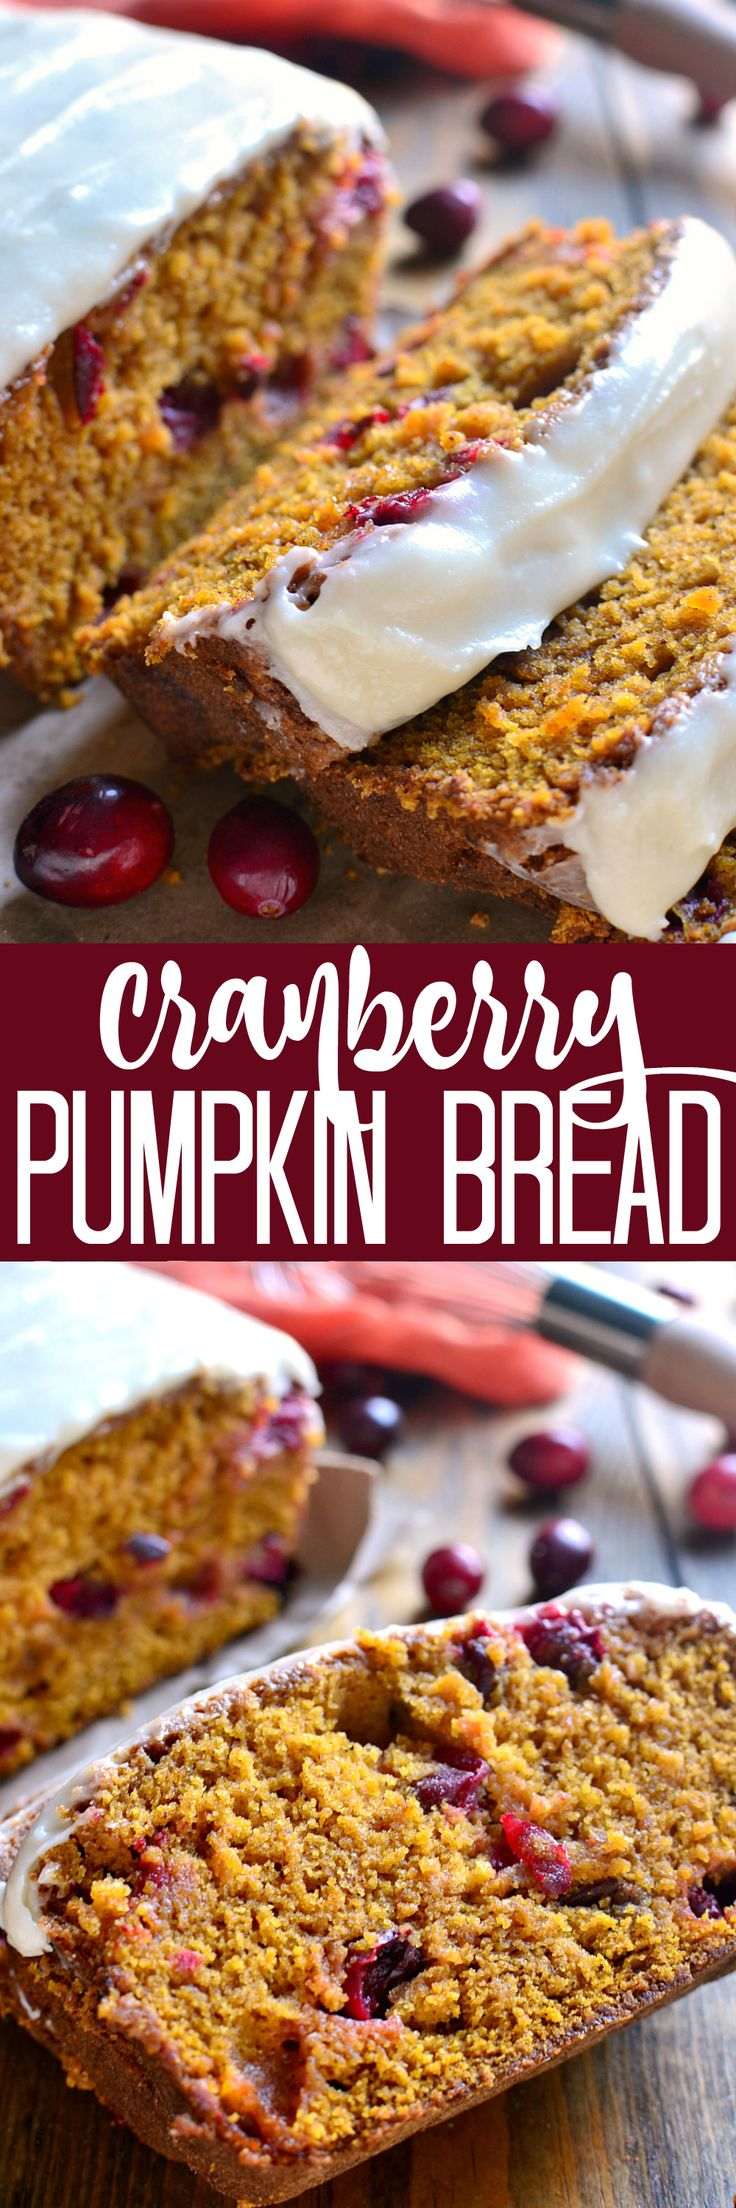 The BEST Pumpkin Bread....made even better with the addition of fresh cranberries and sweet cream cheese icing! The perfect addition to your holiday table!